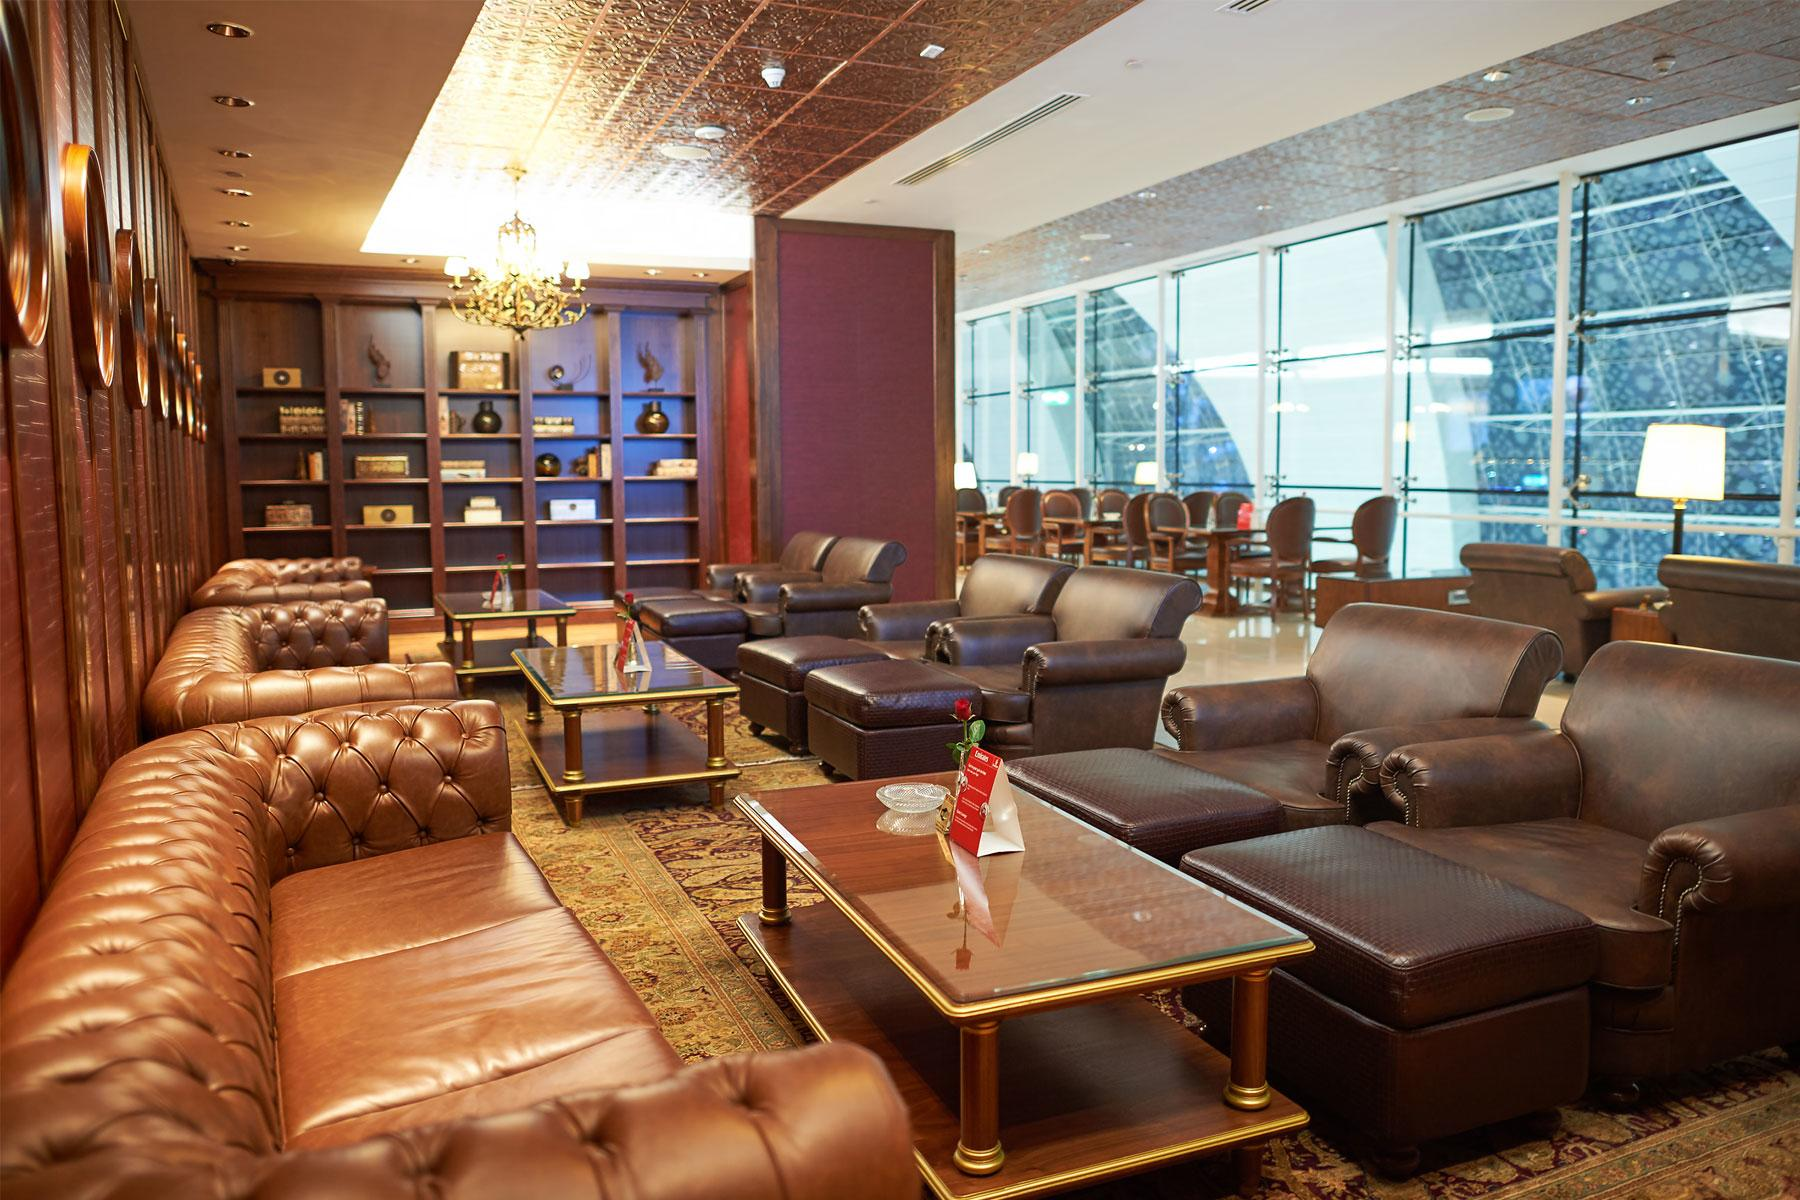 Emirates first class lounge, Dubai International Airport